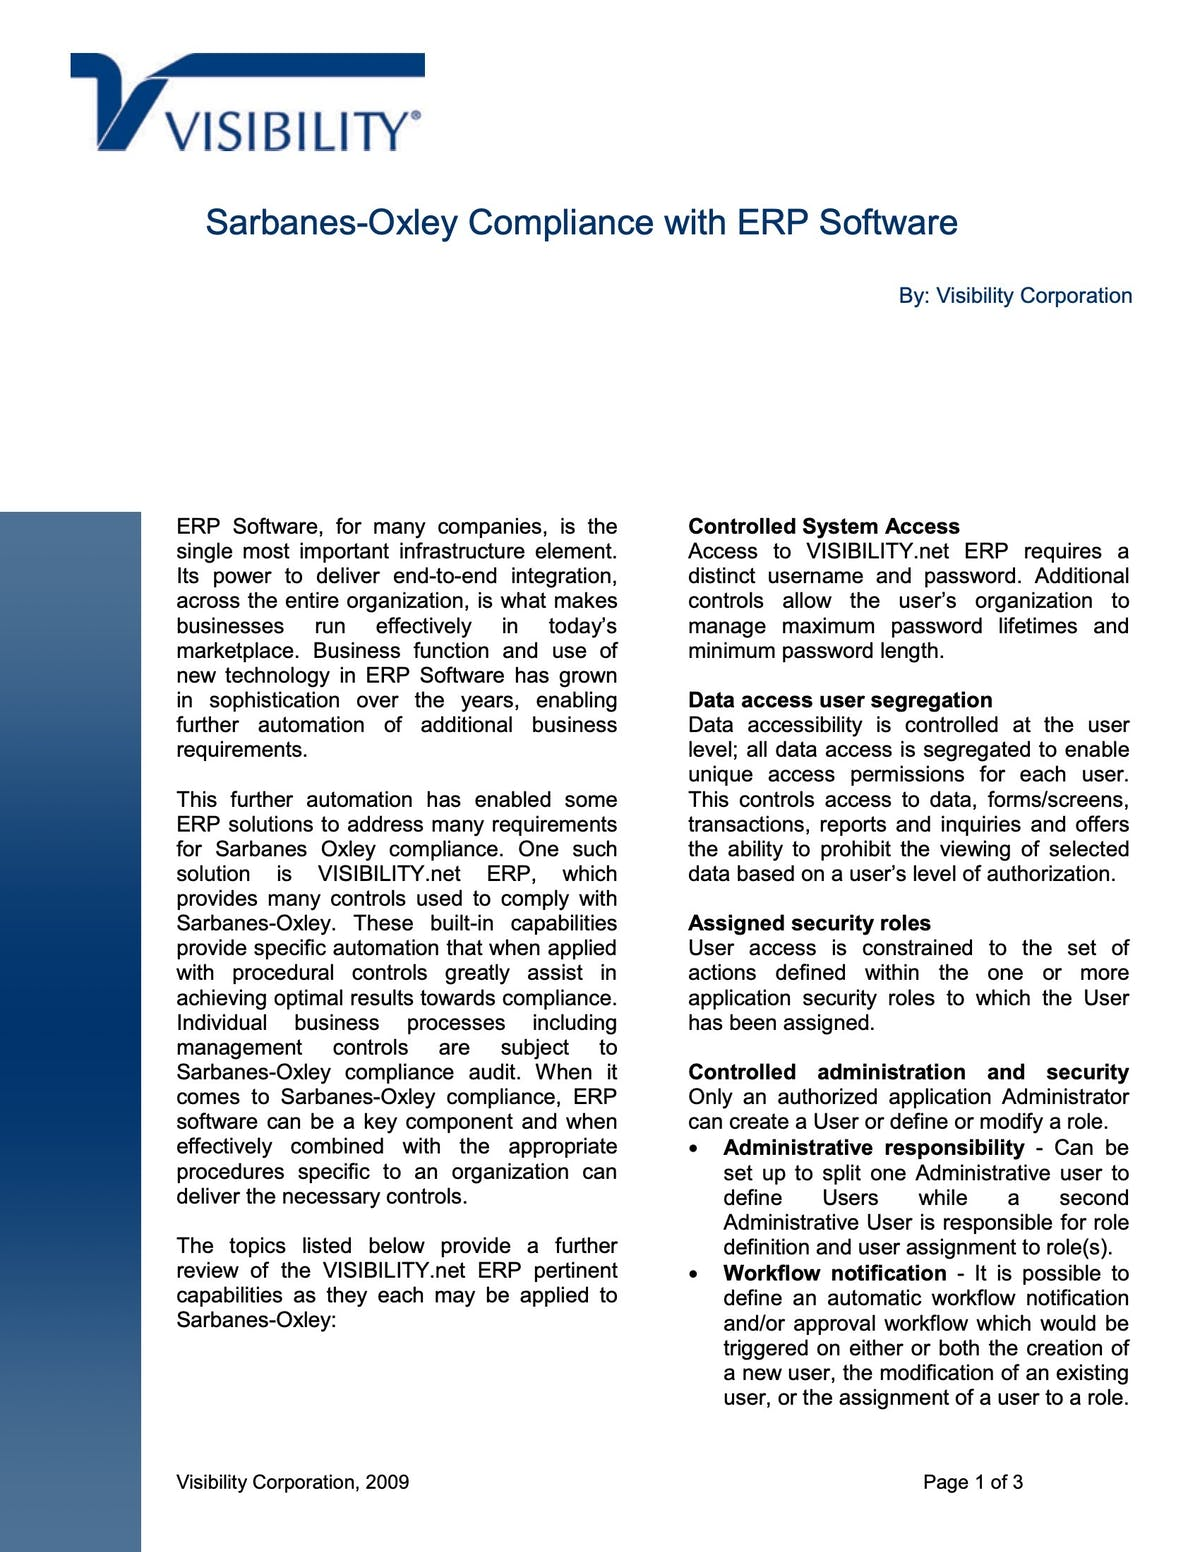 VISIBILITY.net White Paper - Sarbanes-Oxley Compliance with ERP Software